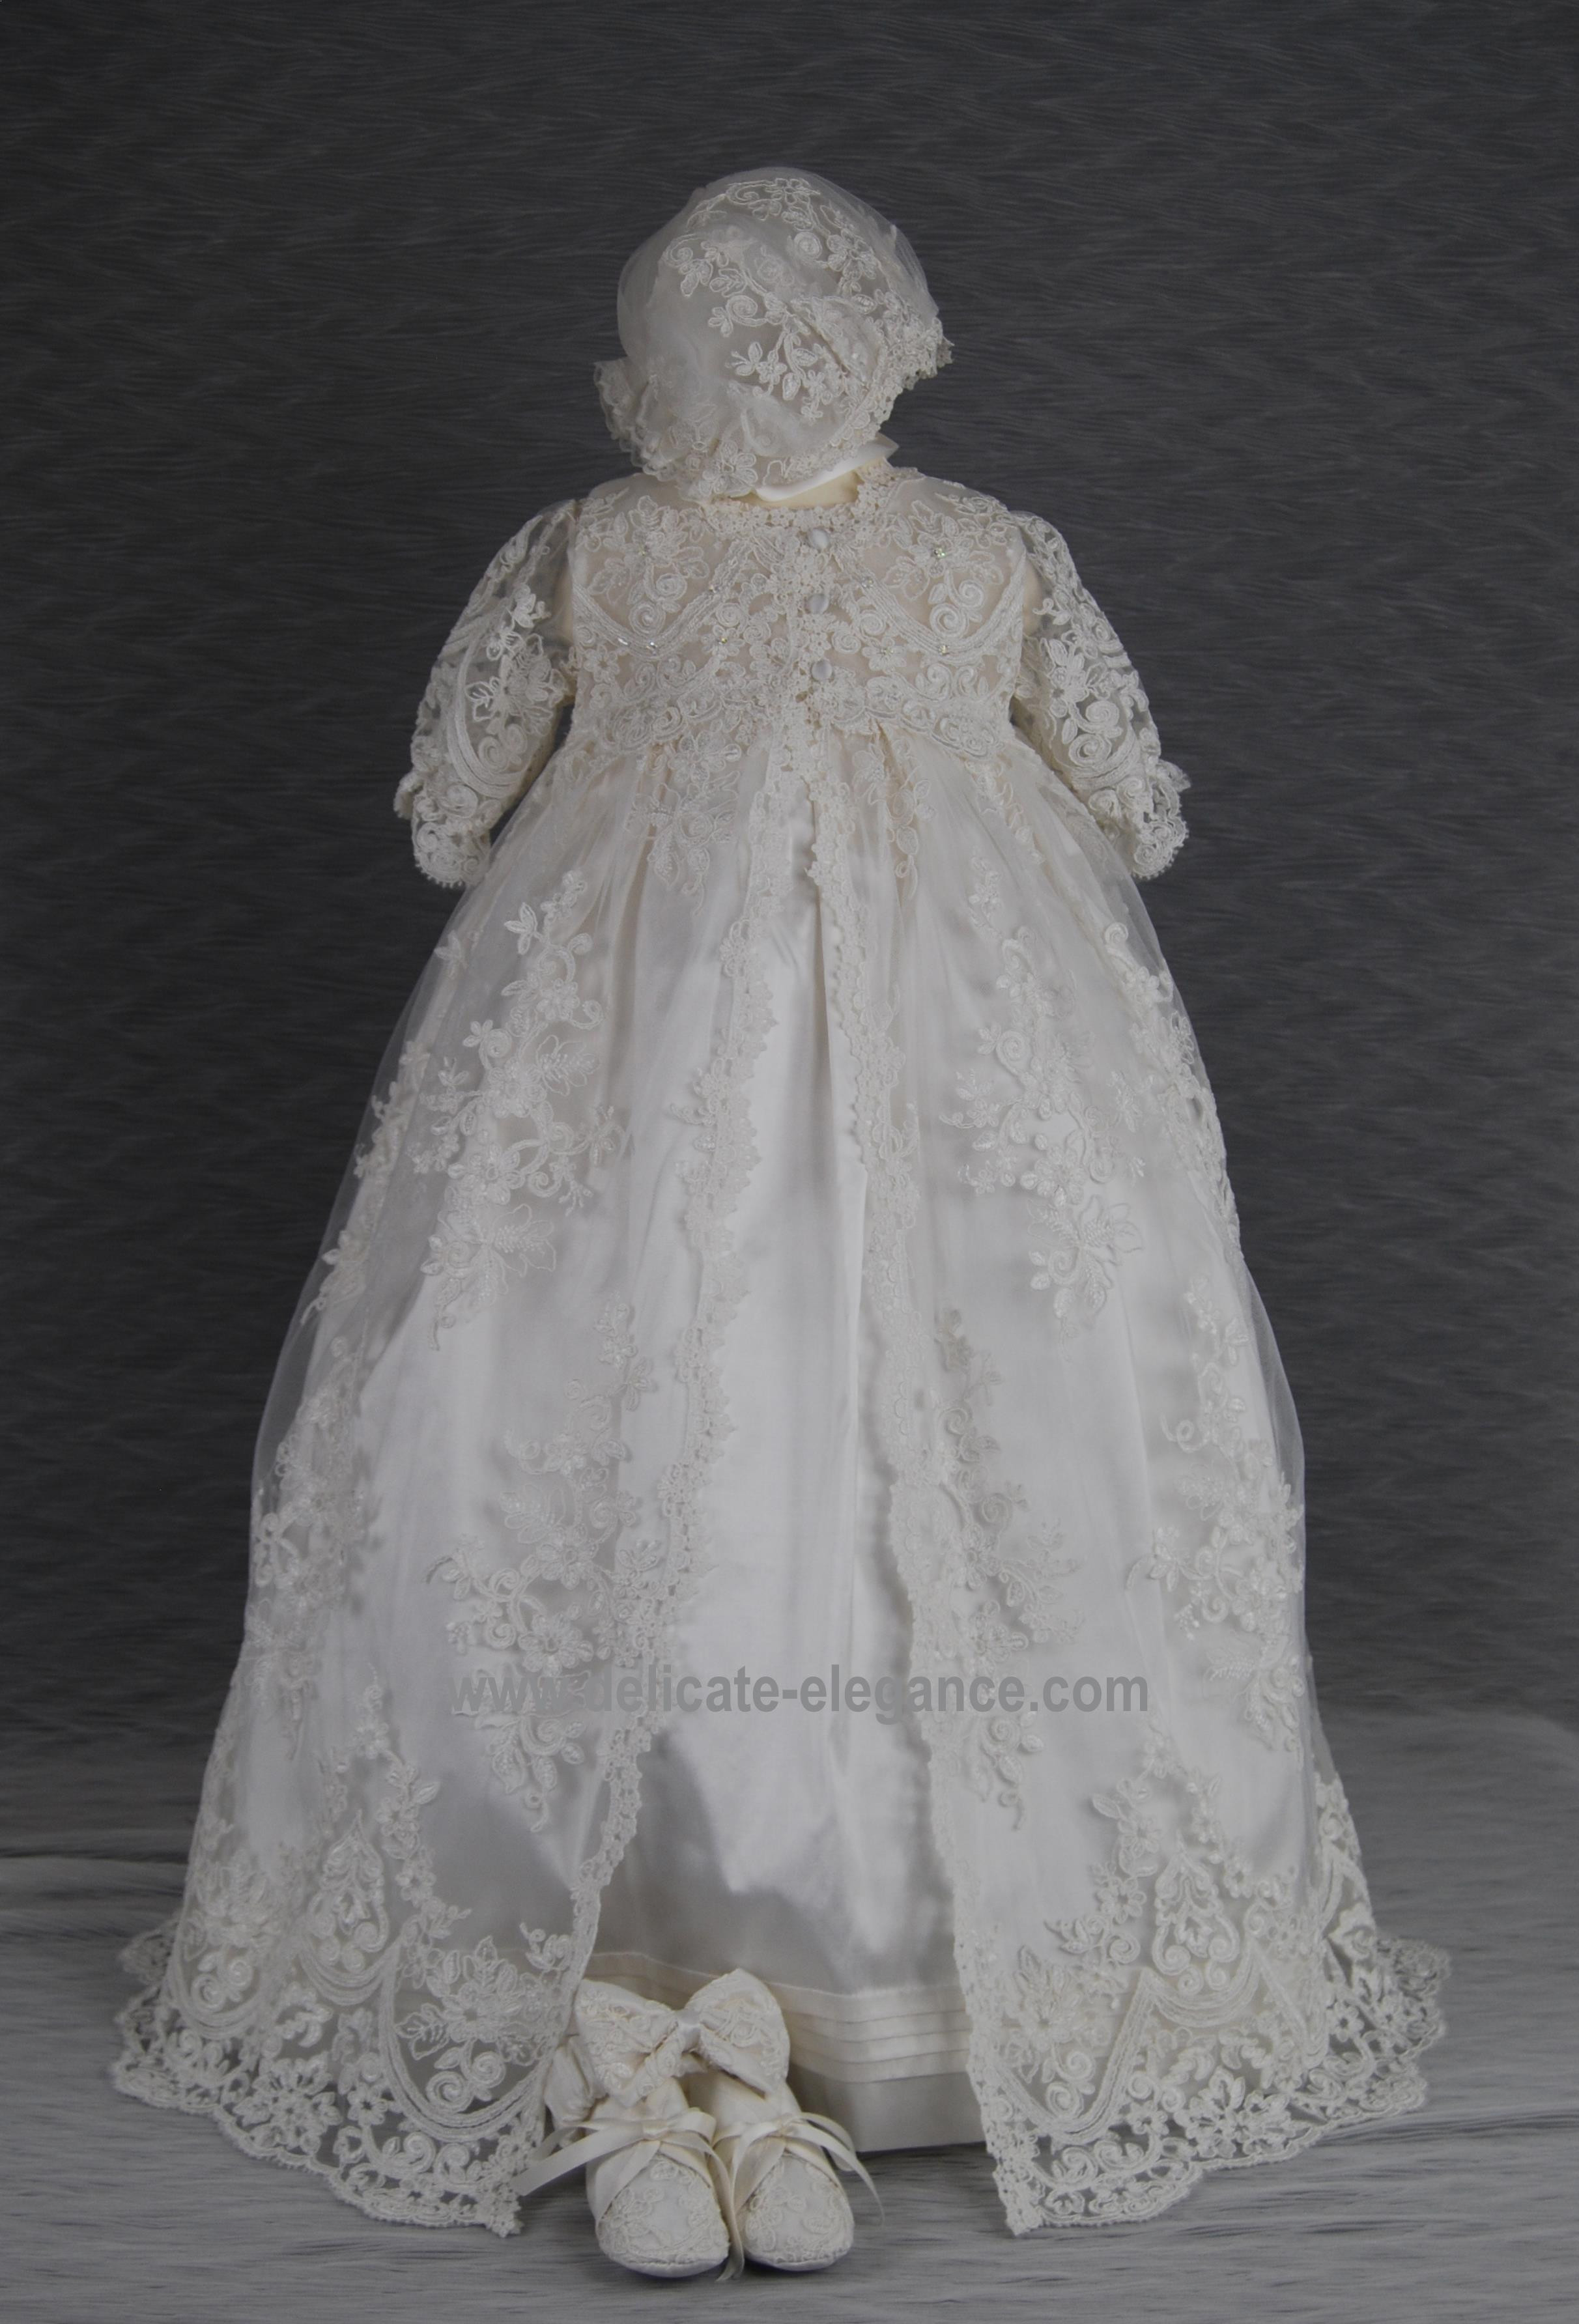 4291PG Girls Silk Christening Gown & Lace Pinafore